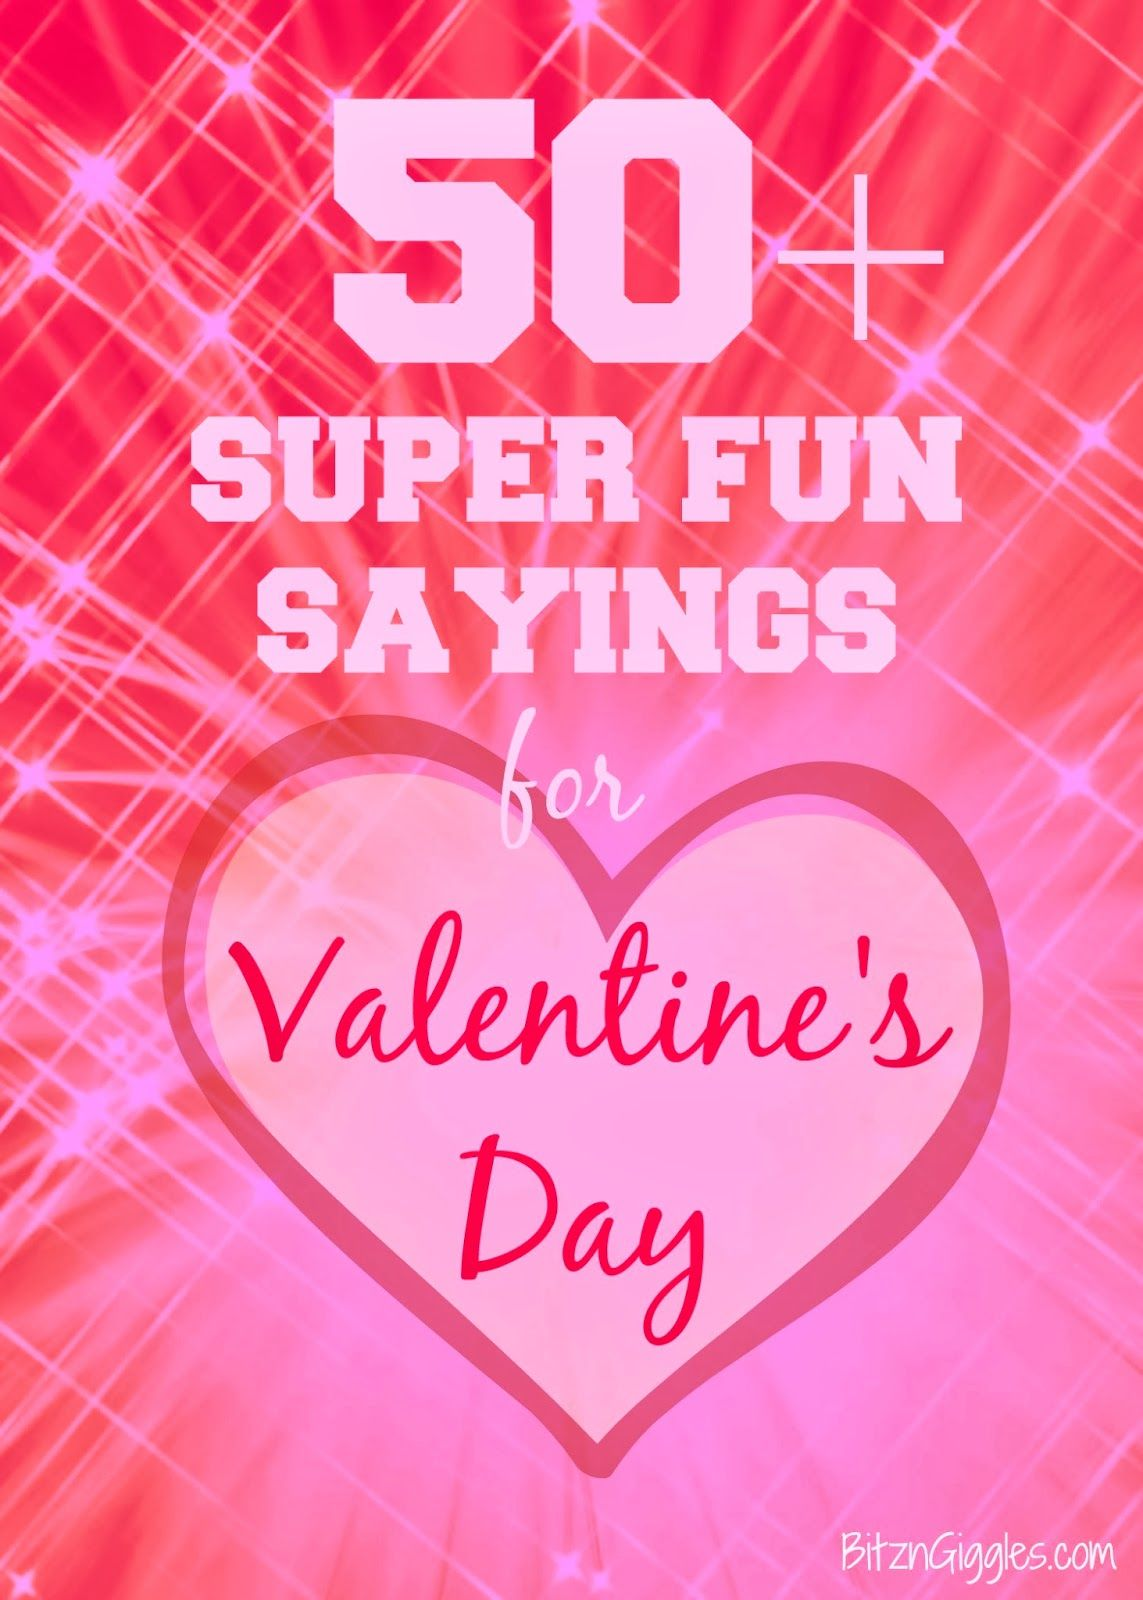 50 Super Fun Sayings For Valentine S Day With Images